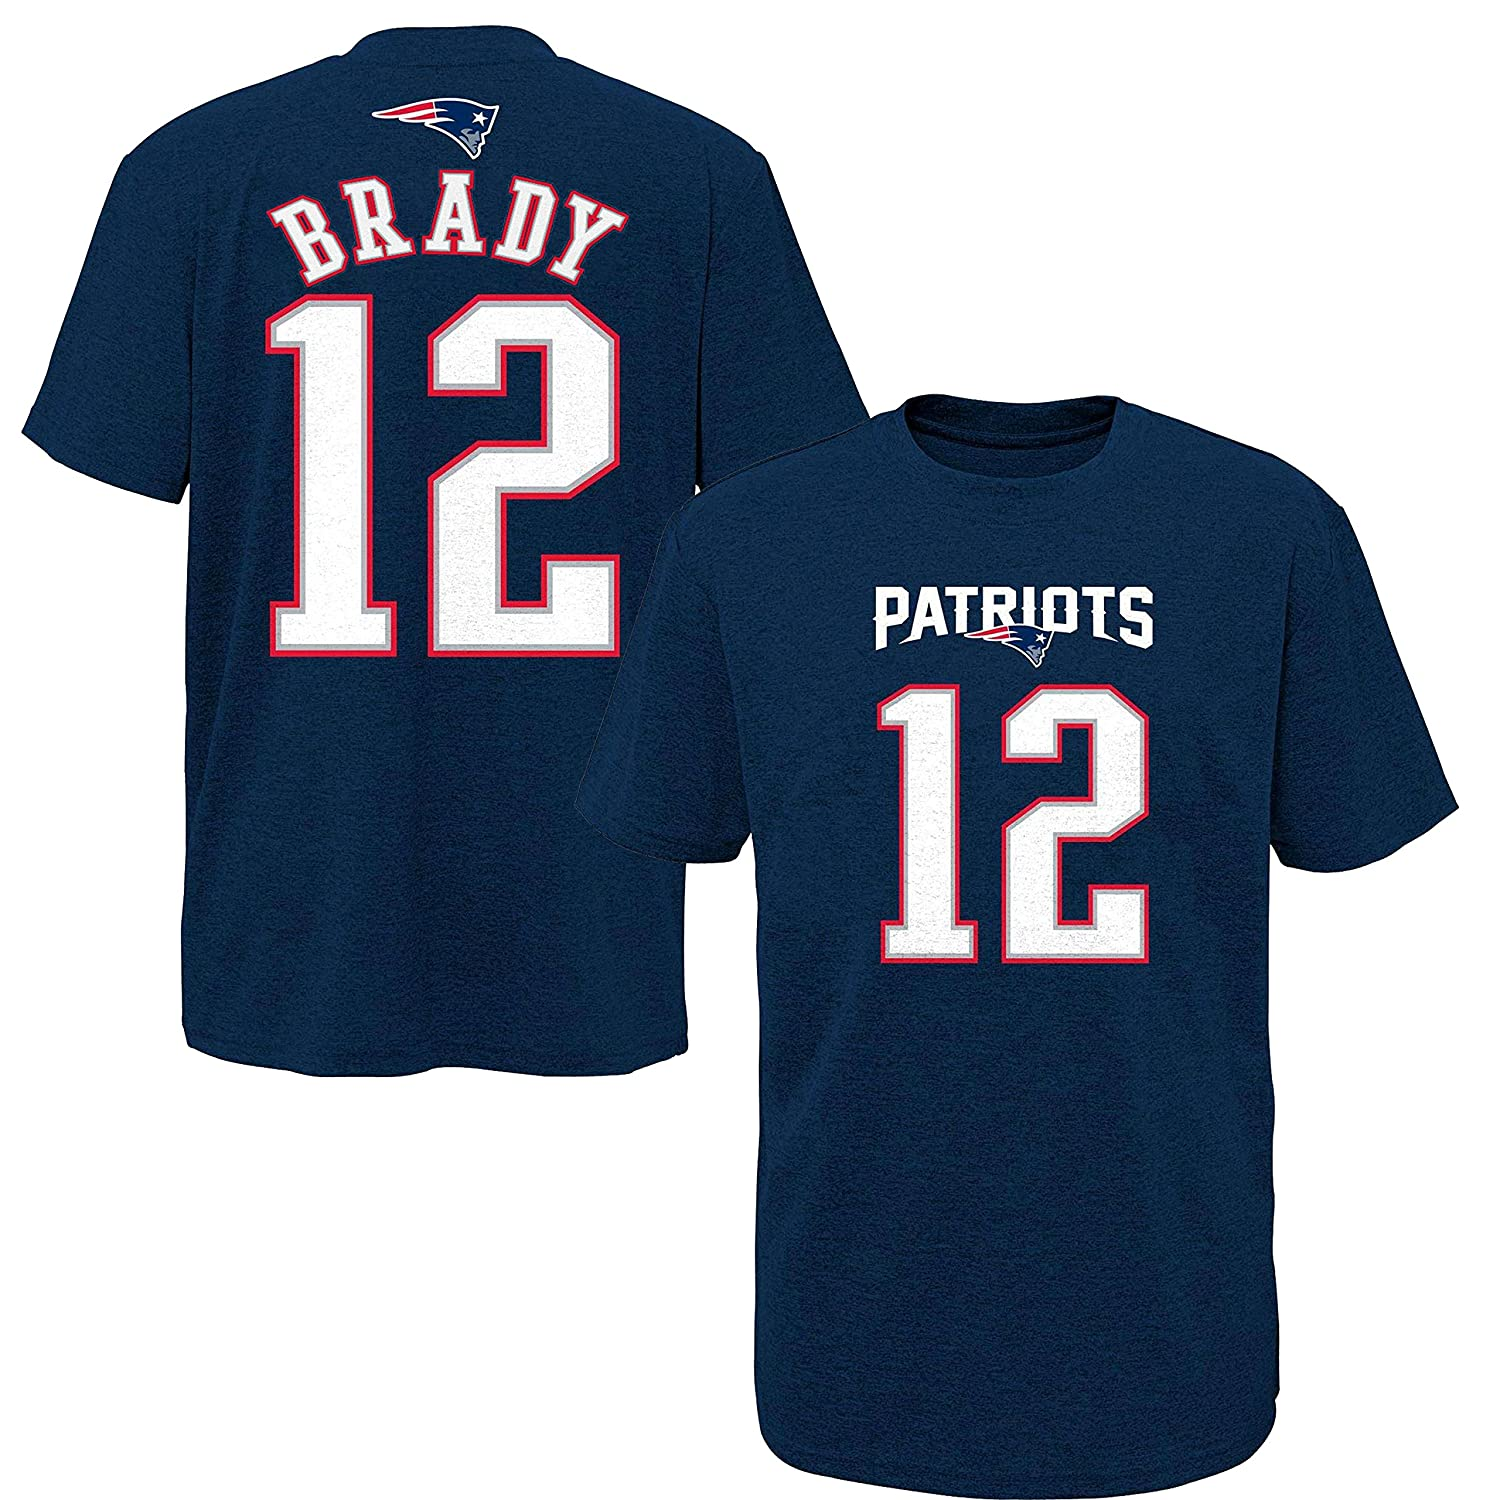 fd8a2d072 Amazon.com : NFL Youth 8-20 Performance Mainliner Team Color Player Name  and Number T-Shirt (Large 14/16, Tom Brady) : Sports & Outdoors